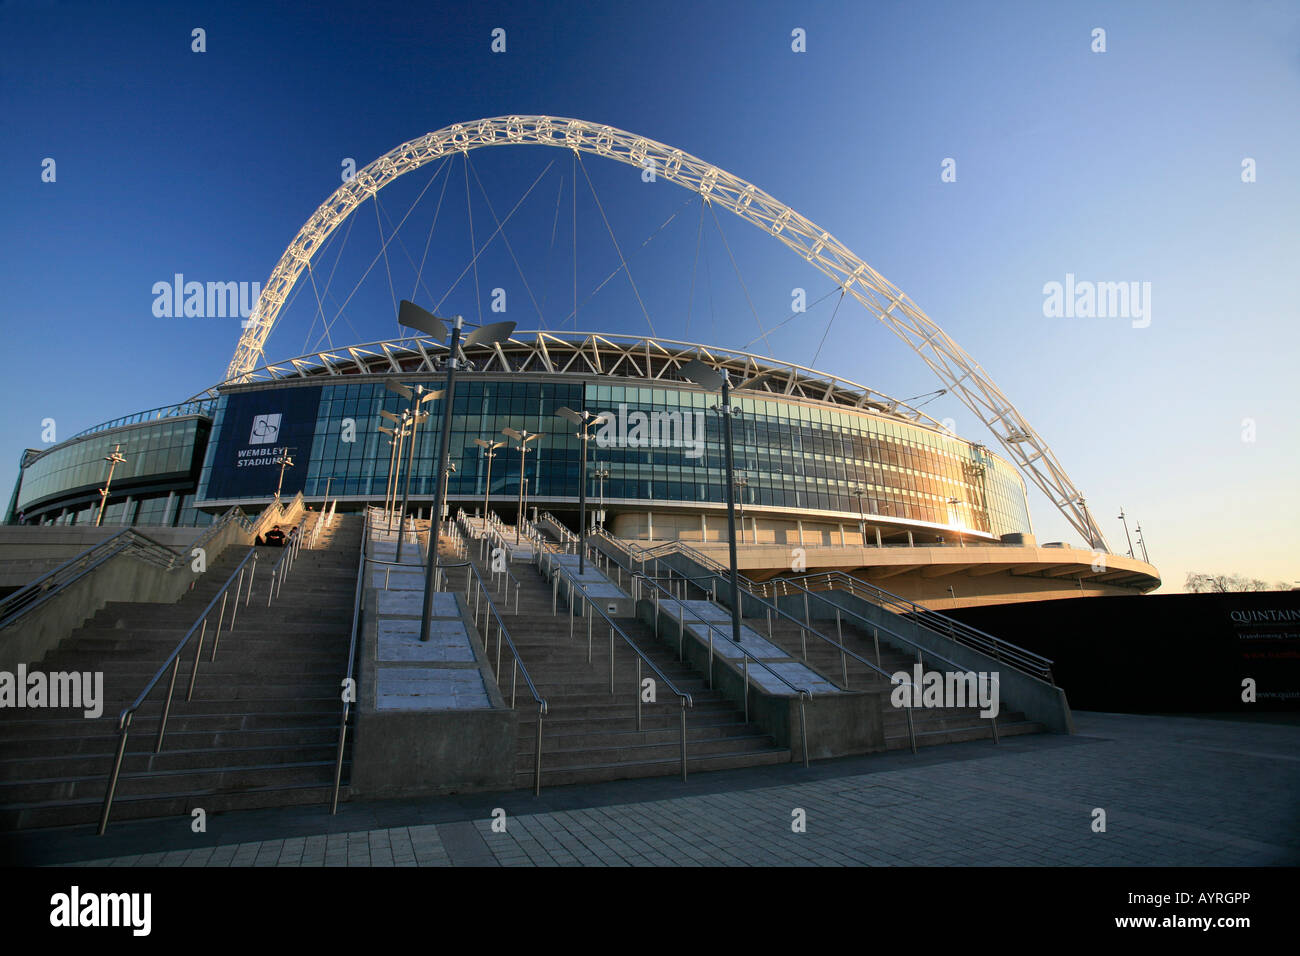 Wembley Stadium in the evening sun, London, England, UK - Stock Image